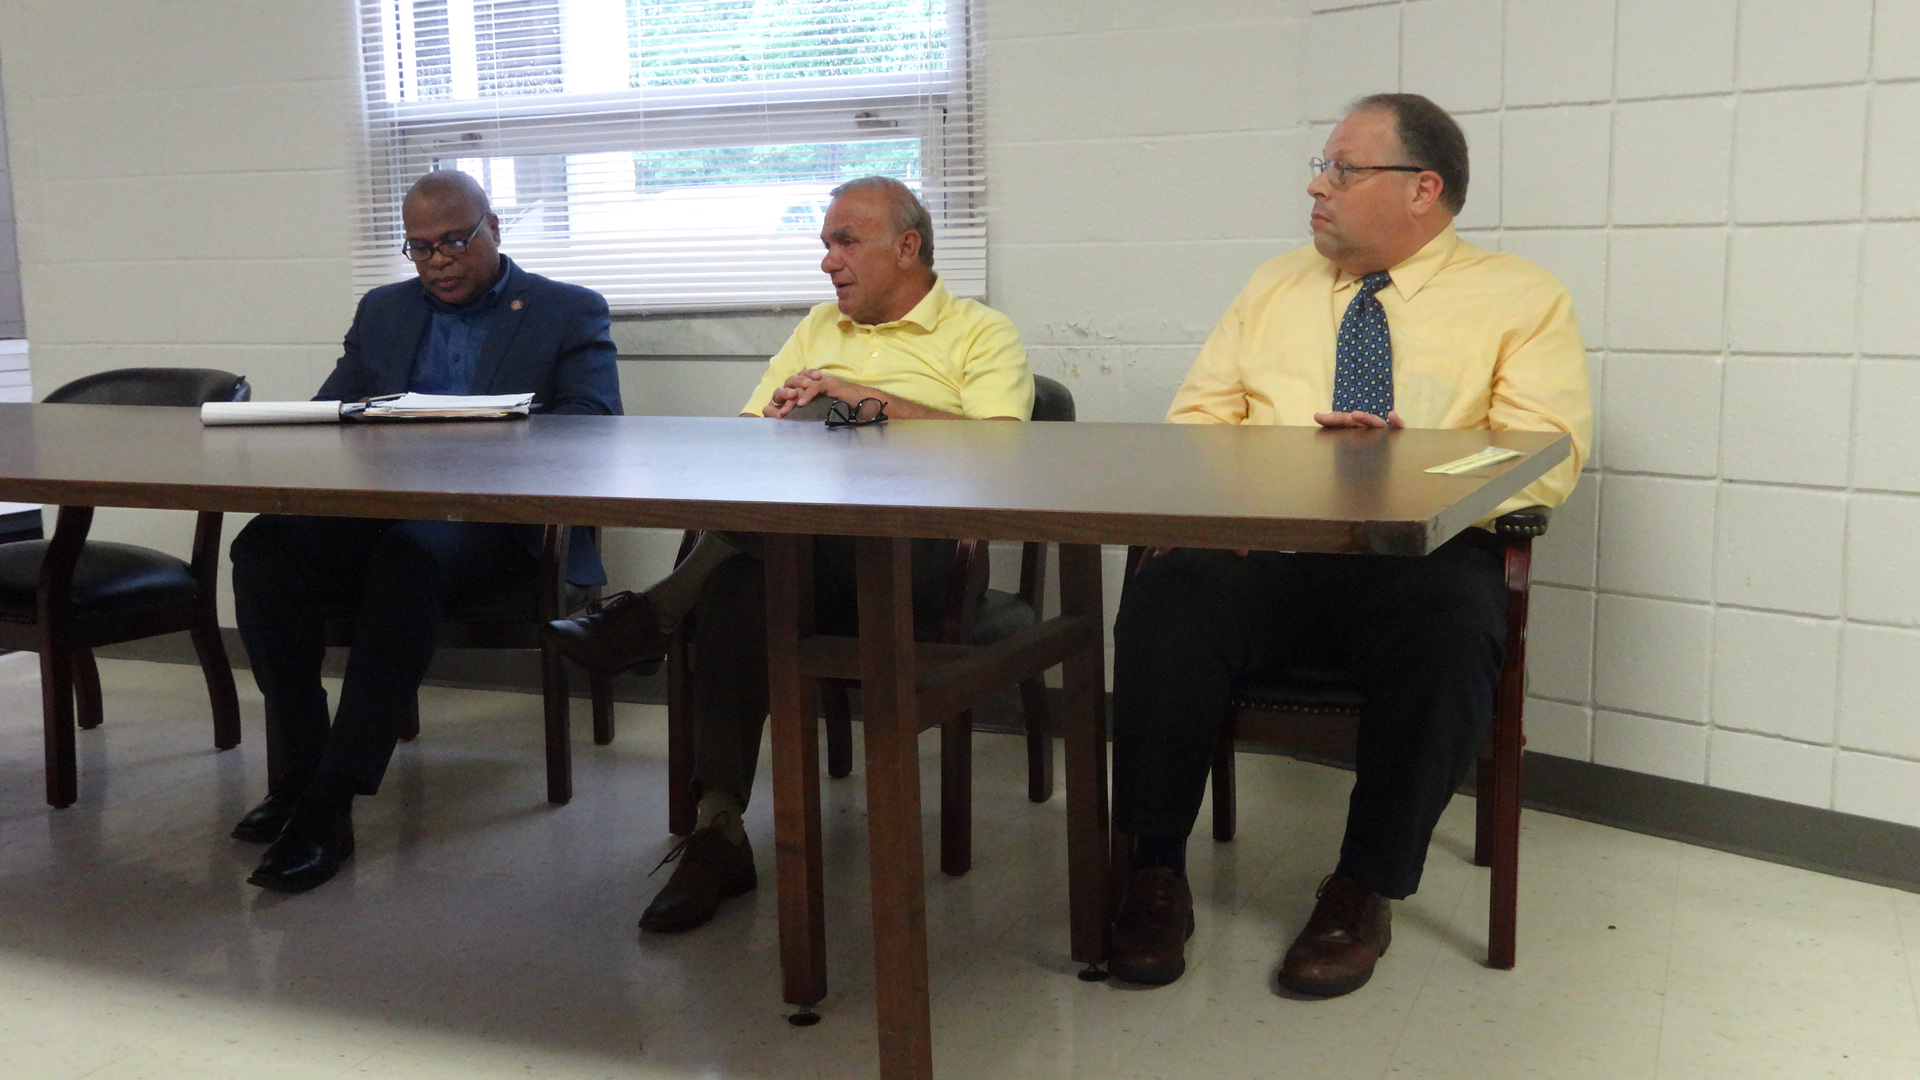 Trumbull County Commissioner Frank Fuda, center, speaks a meeting about the injection wells proposed for Brookfield. Also shown are state Sen. Glenn Holmes, left, and Trumbull County Health Commissioner Frank Migliozzi.